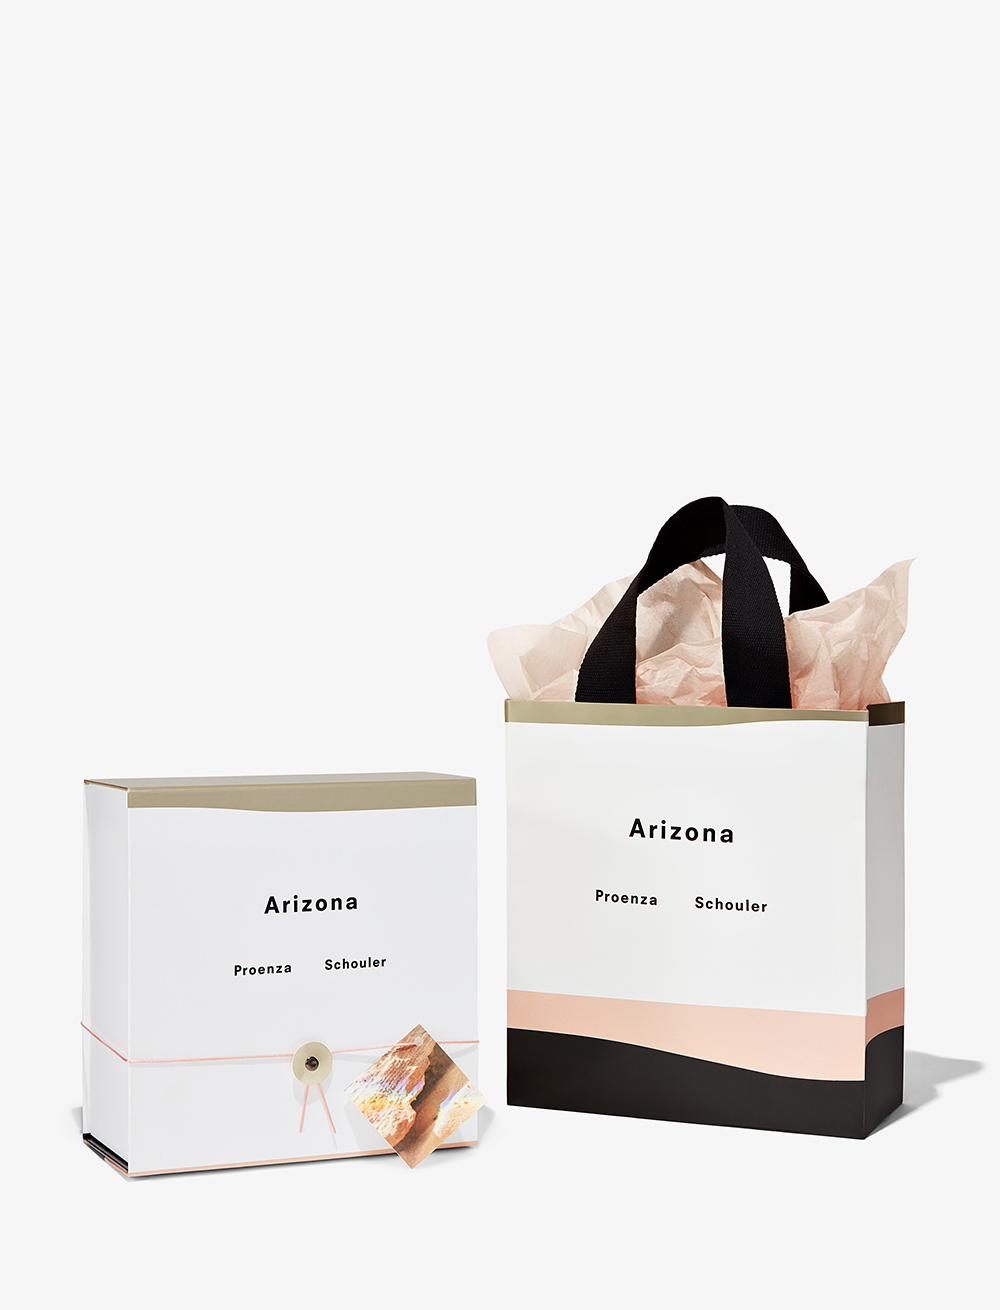 Complimentary Gift Packaging with Every Arizona Purchase through December 31, 2019.